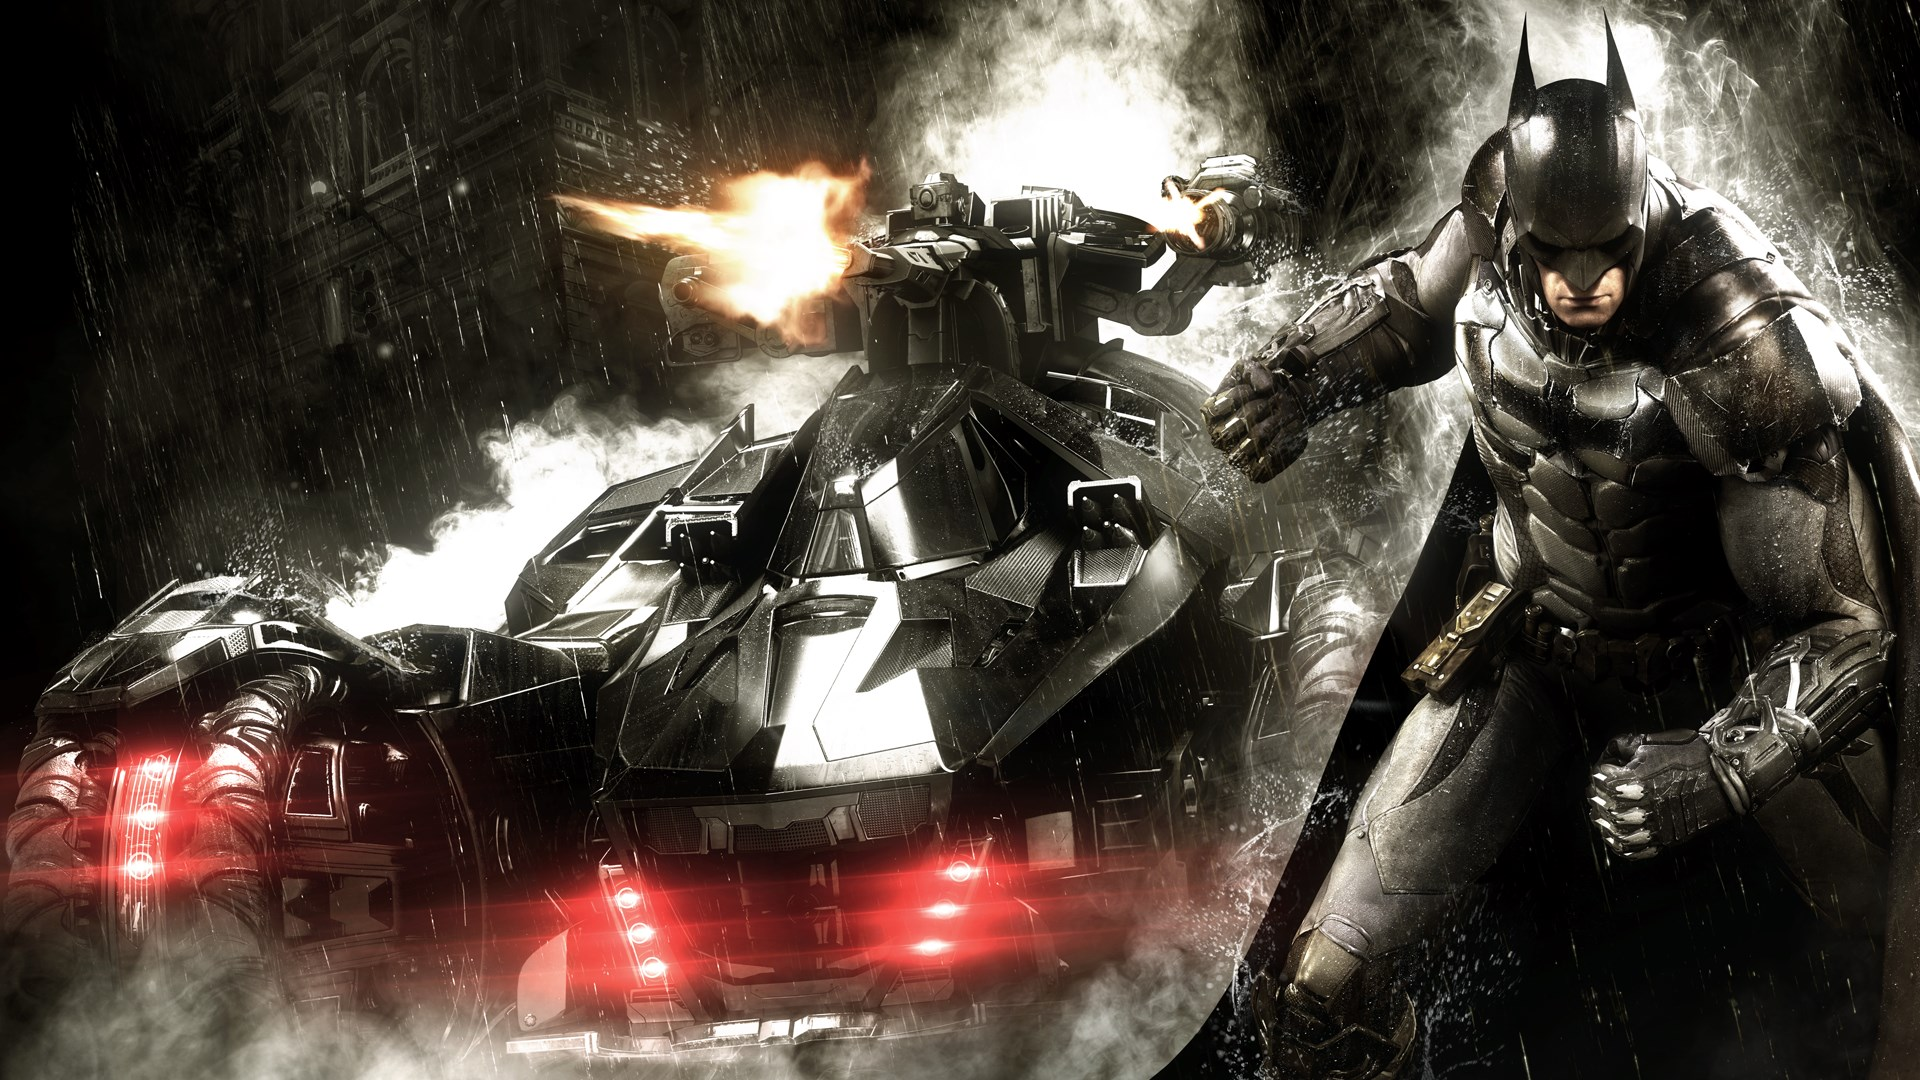 Buy Batman: Arkham Knight Premium Edition - Microsoft Store